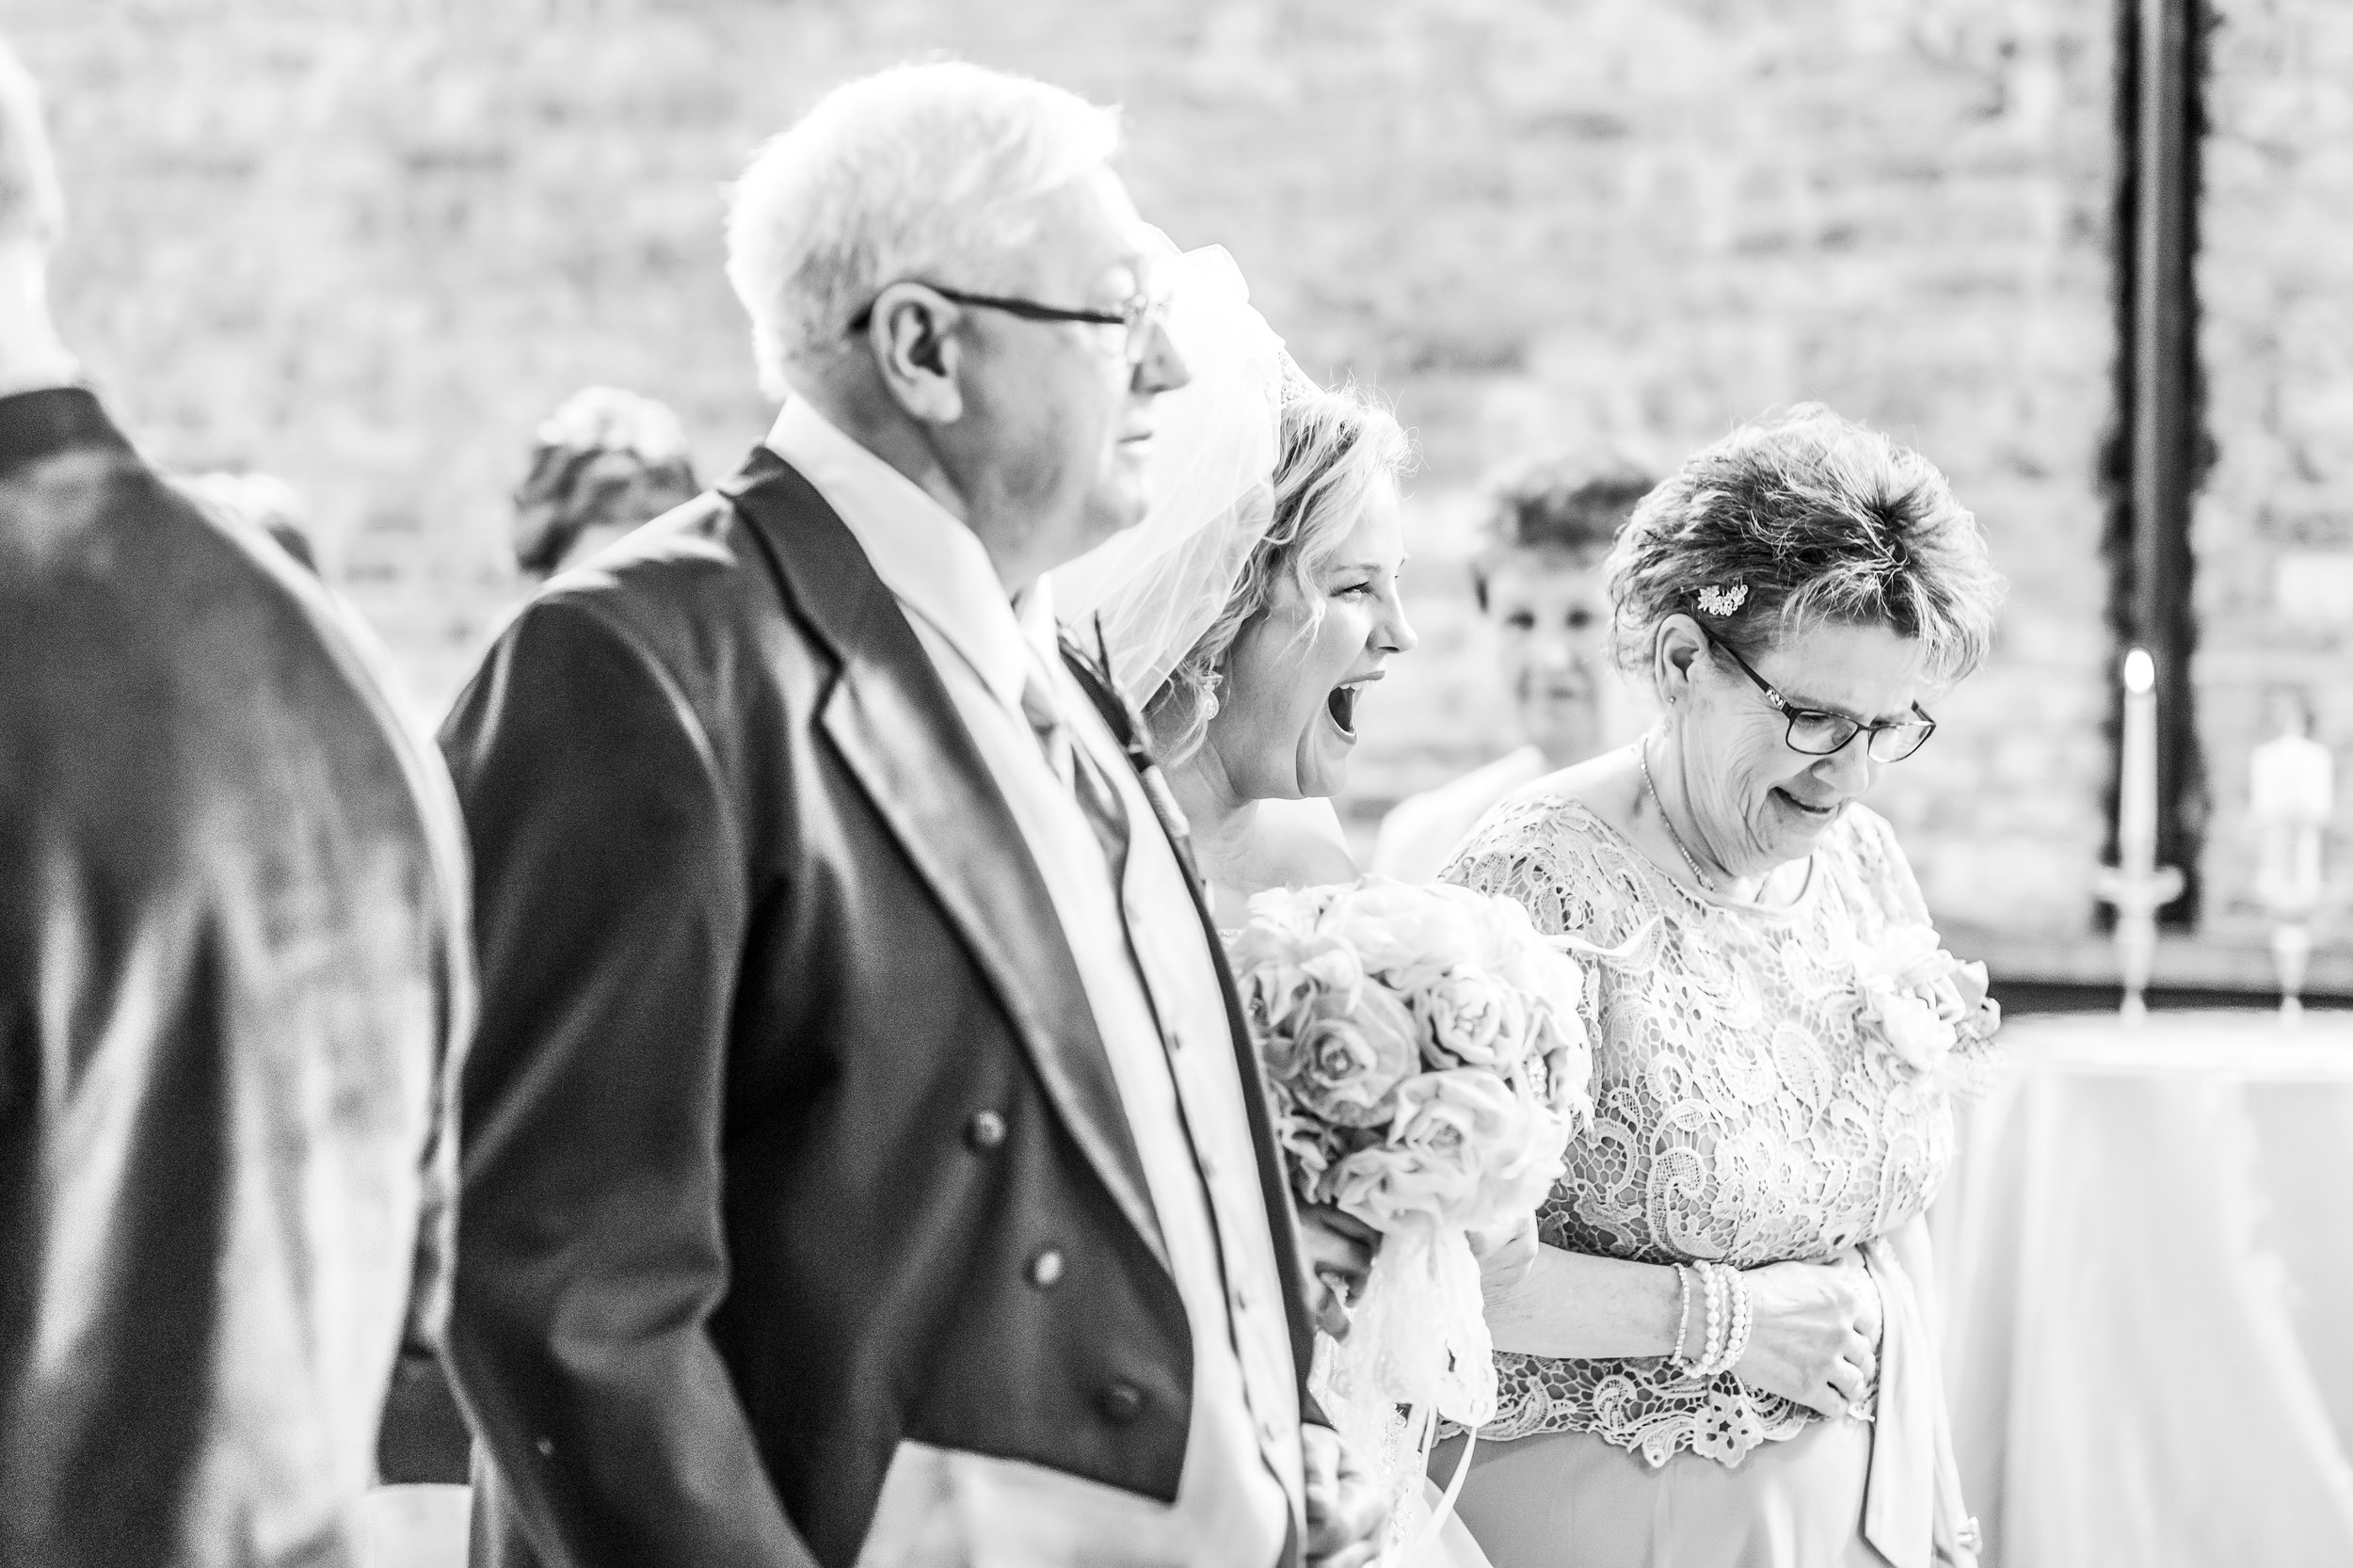 Brides adorable reaction to seeing her groom at their wedding ceremony at Mercantile Hall